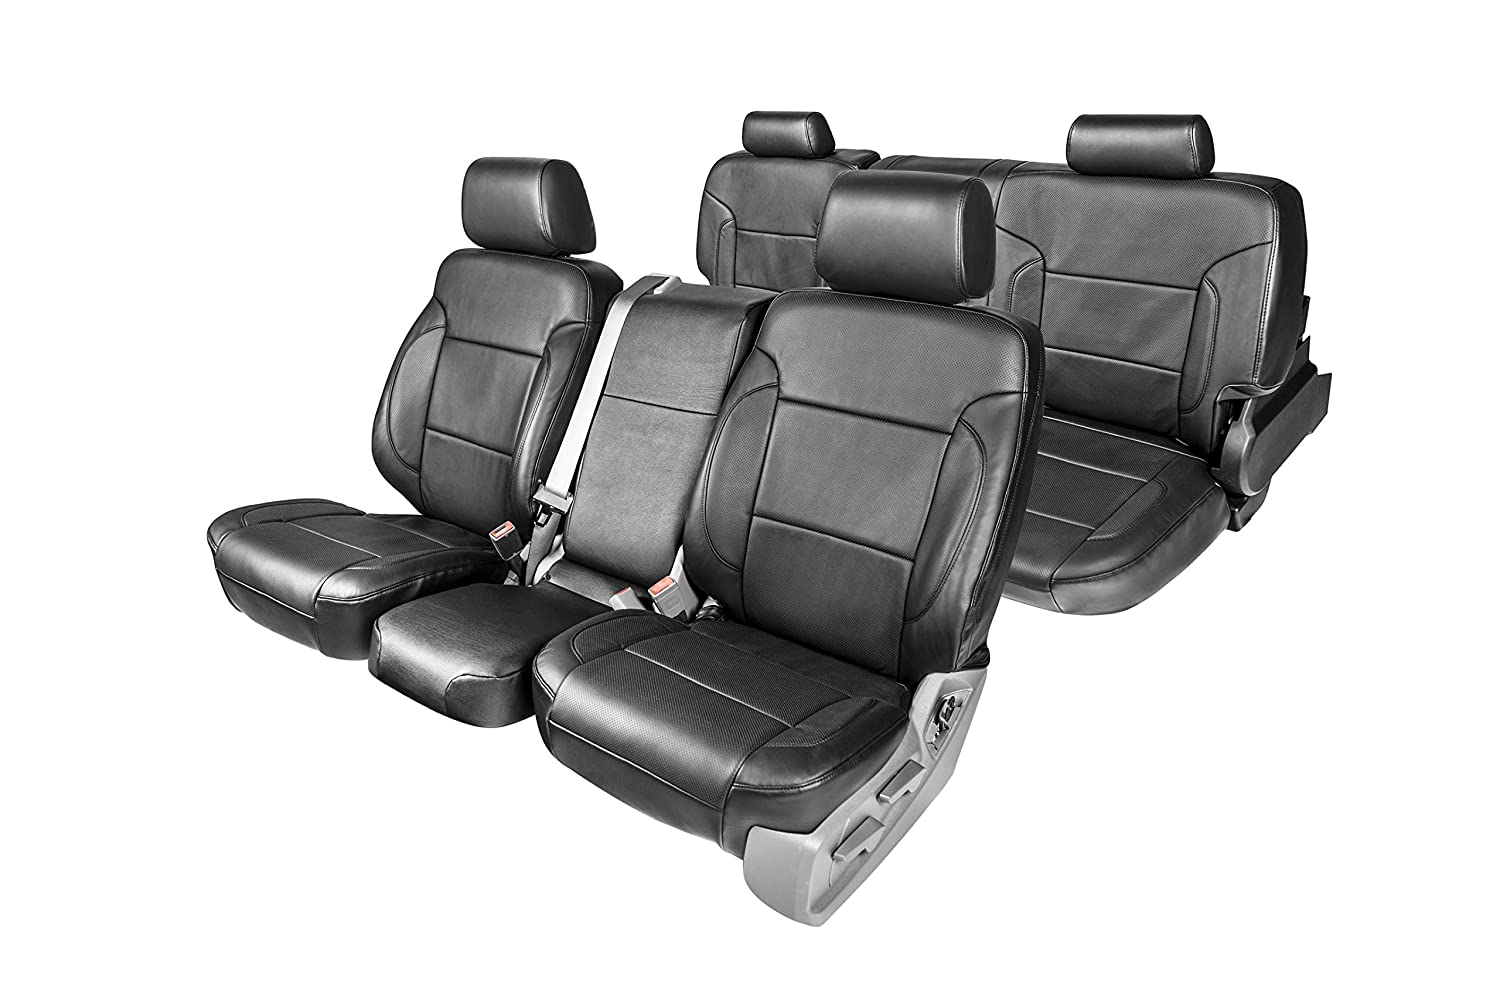 Clazzio 750312blk Black Leather Front and Rear Row Seat Cover for Chevrolet Silverado 1500//2500//3500 Extended Cab